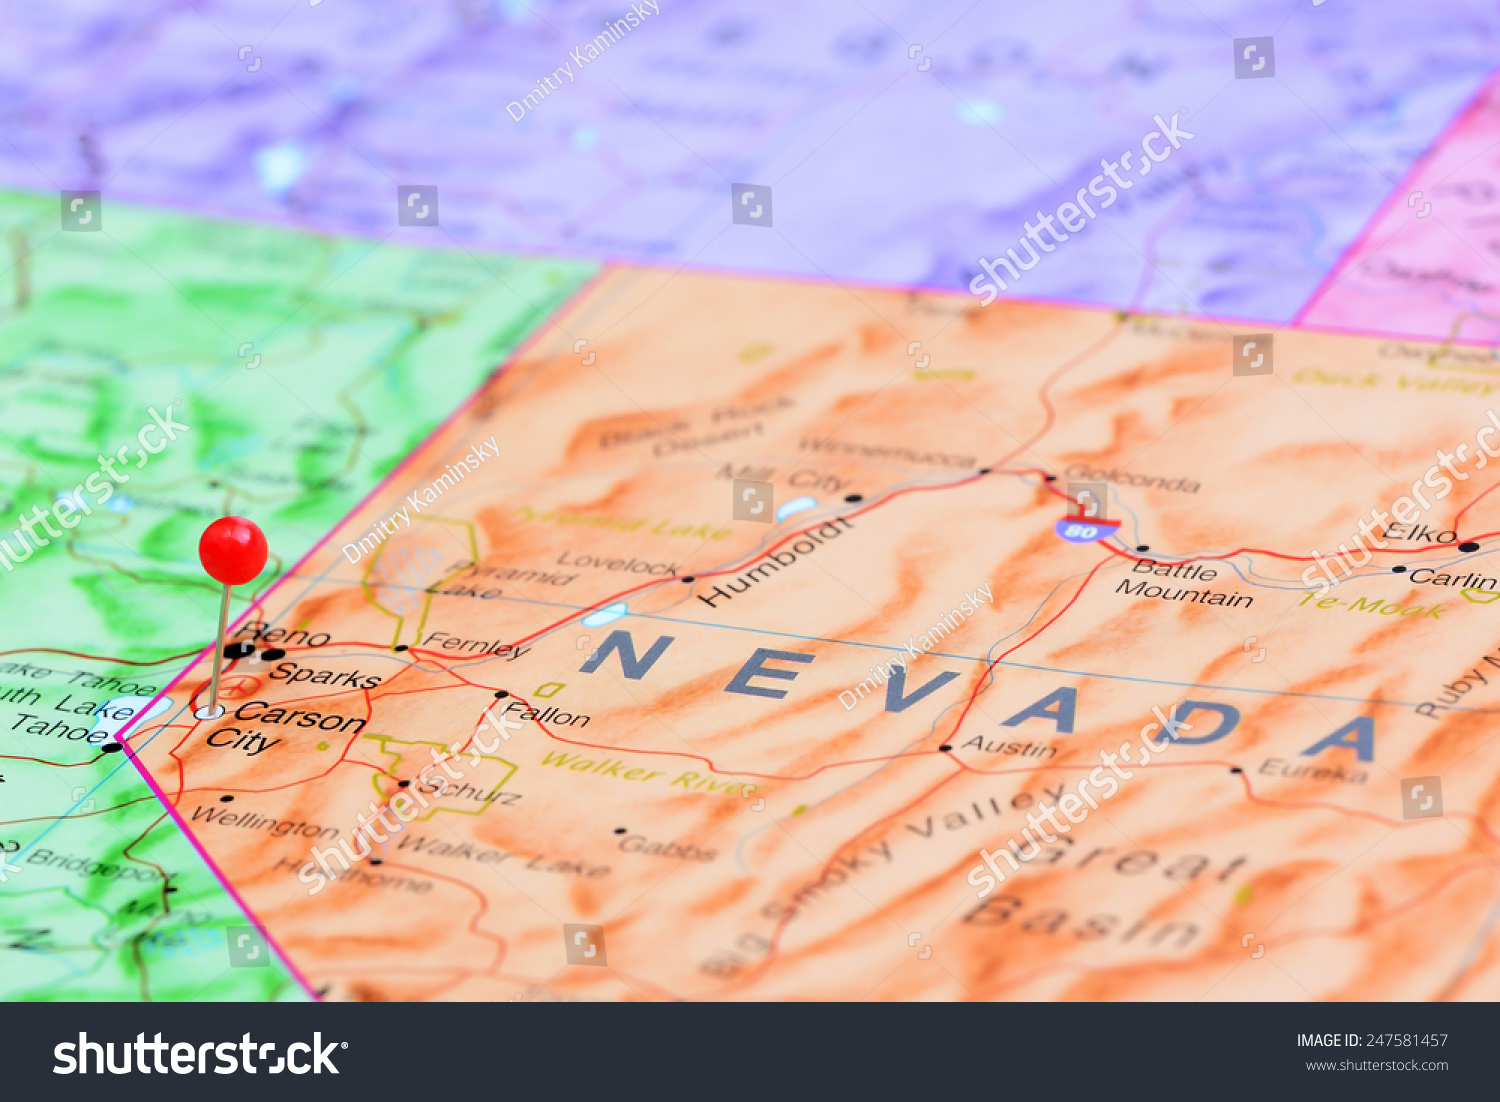 Carson City Pinned On Map USA Stock Photo (Edit Now) 247581457 ... on